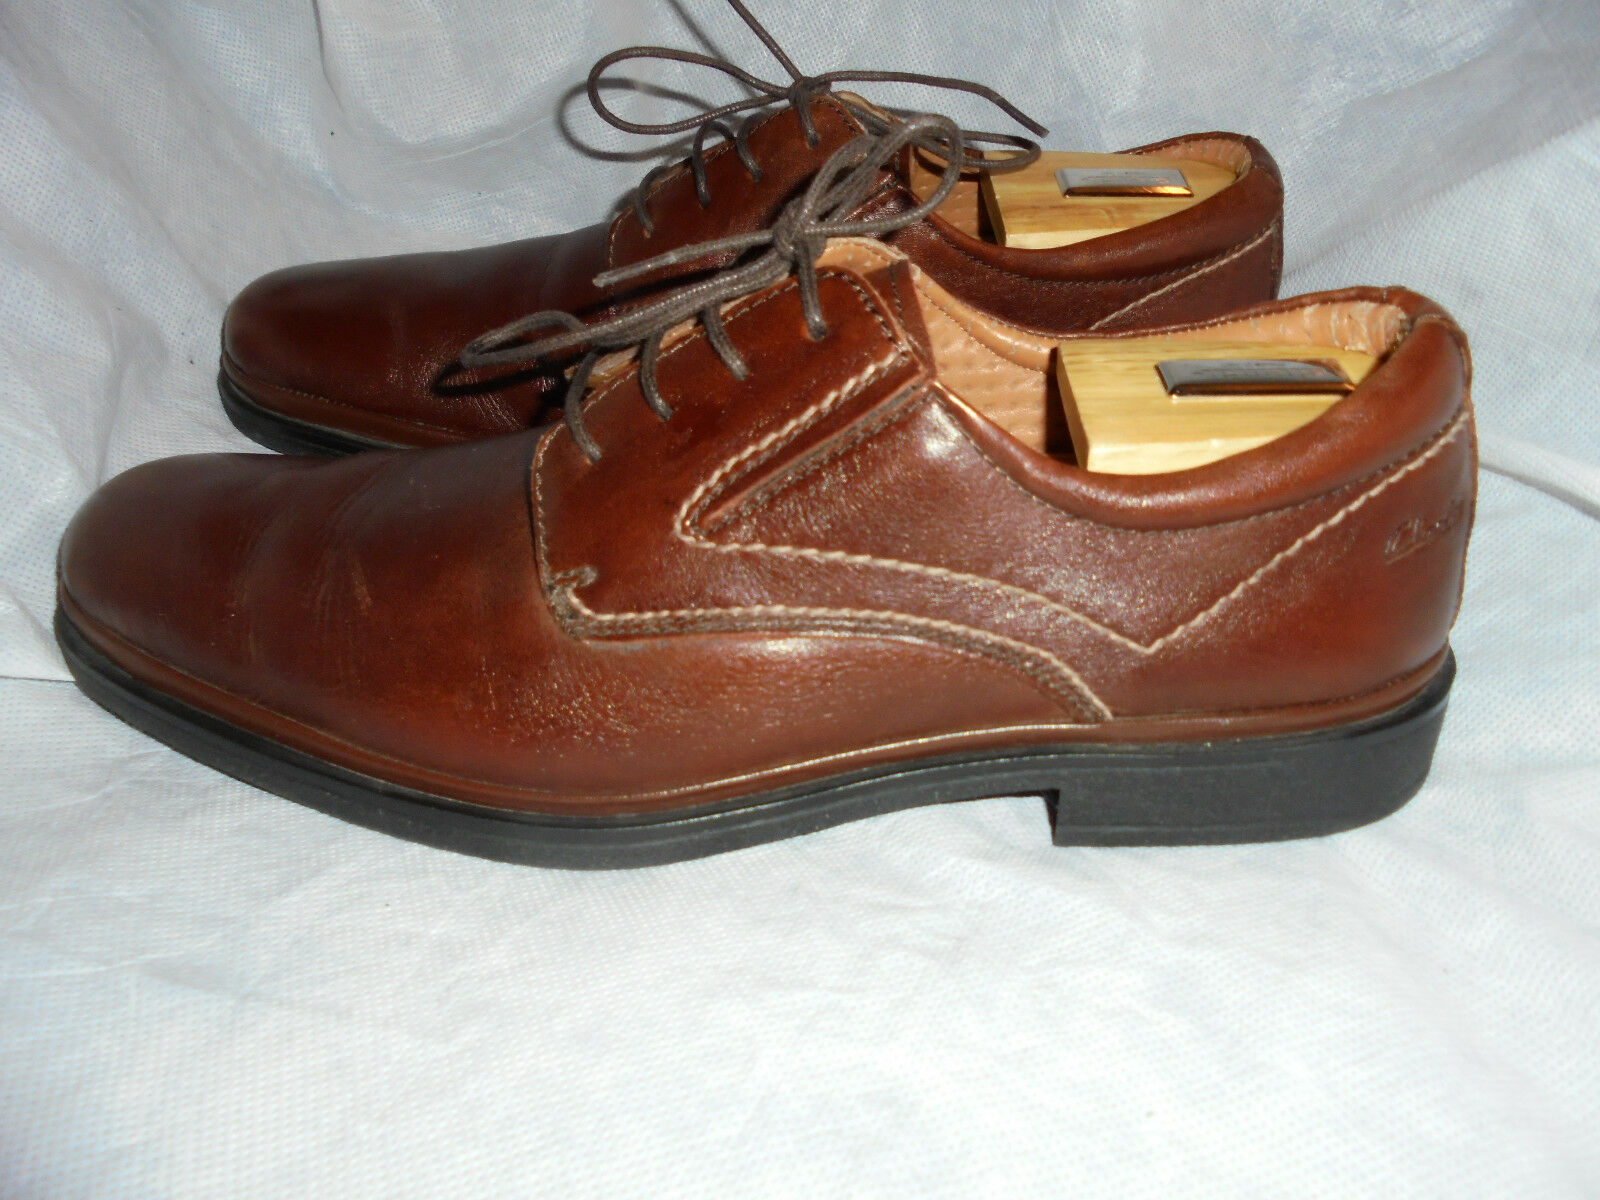 CLARKS FLEXI LIGHT MEN'S BROWN 43 LEATHER LACE UP Schuhe 43 BROWN SIZE UK 9 ... 5c3e30